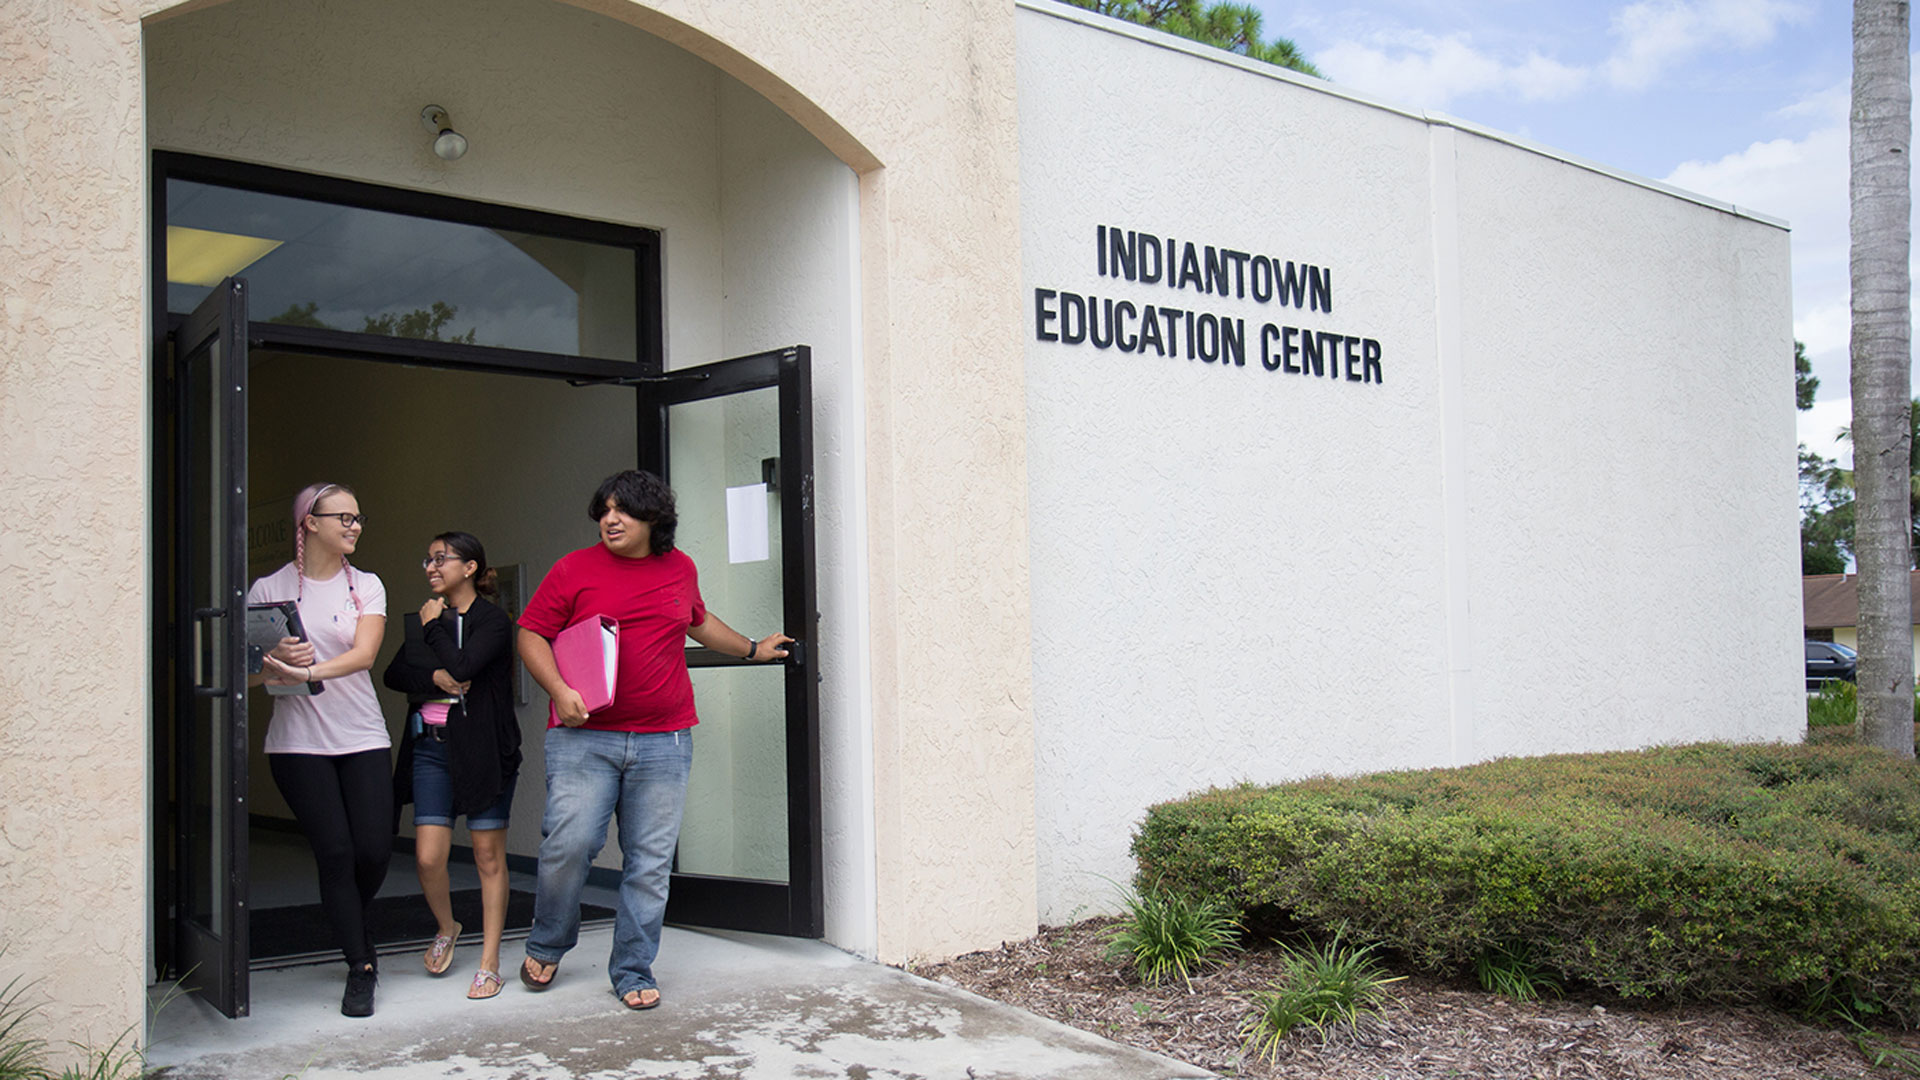 The IRSC Indiantown Education Center